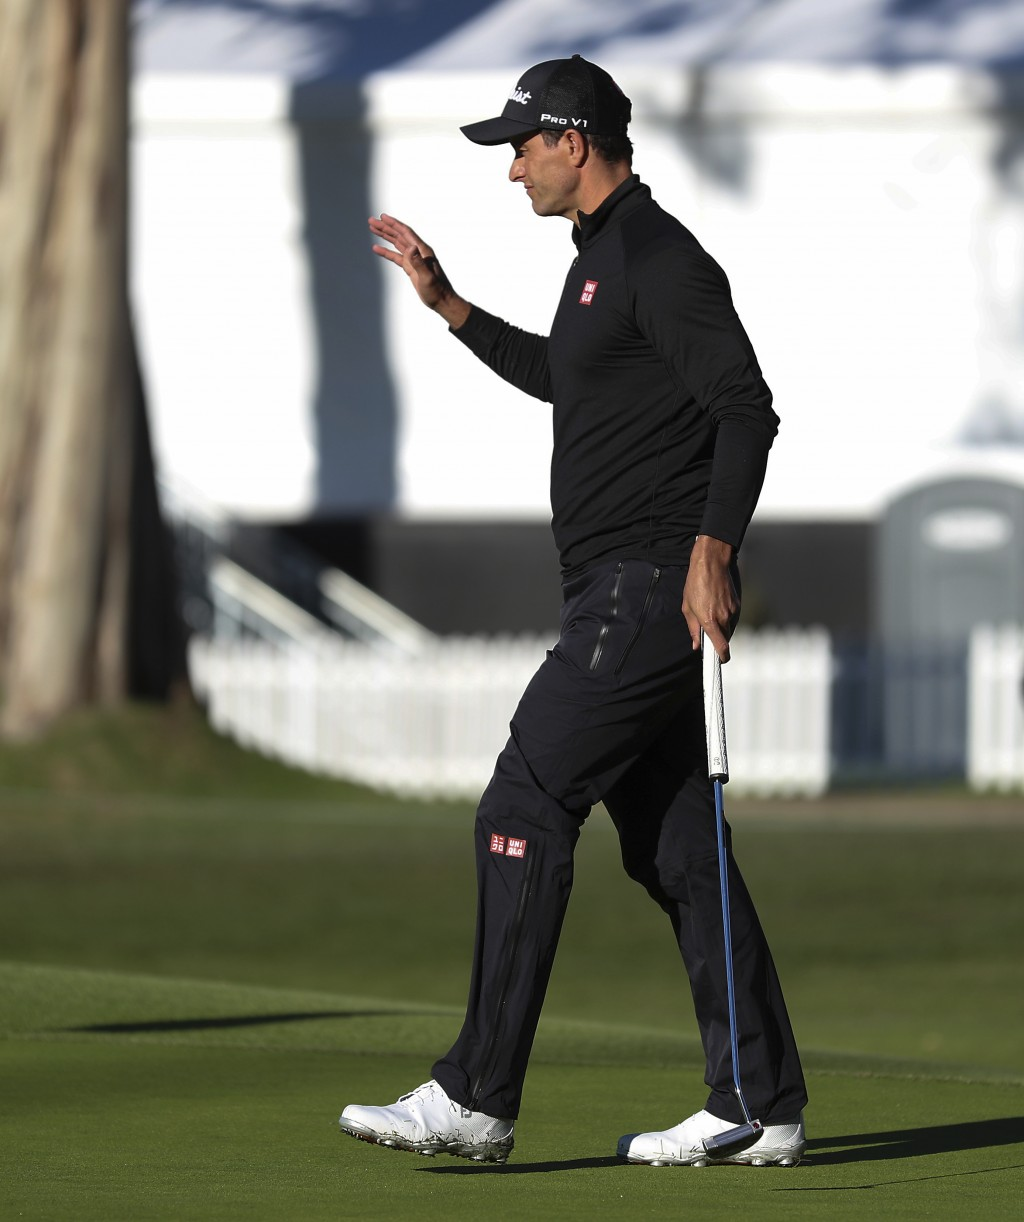 Adam Scott, of Australia, waves to the crowd after making a birdie putt on the eighth hole as third-round play continues during the Genesis Open golf ...